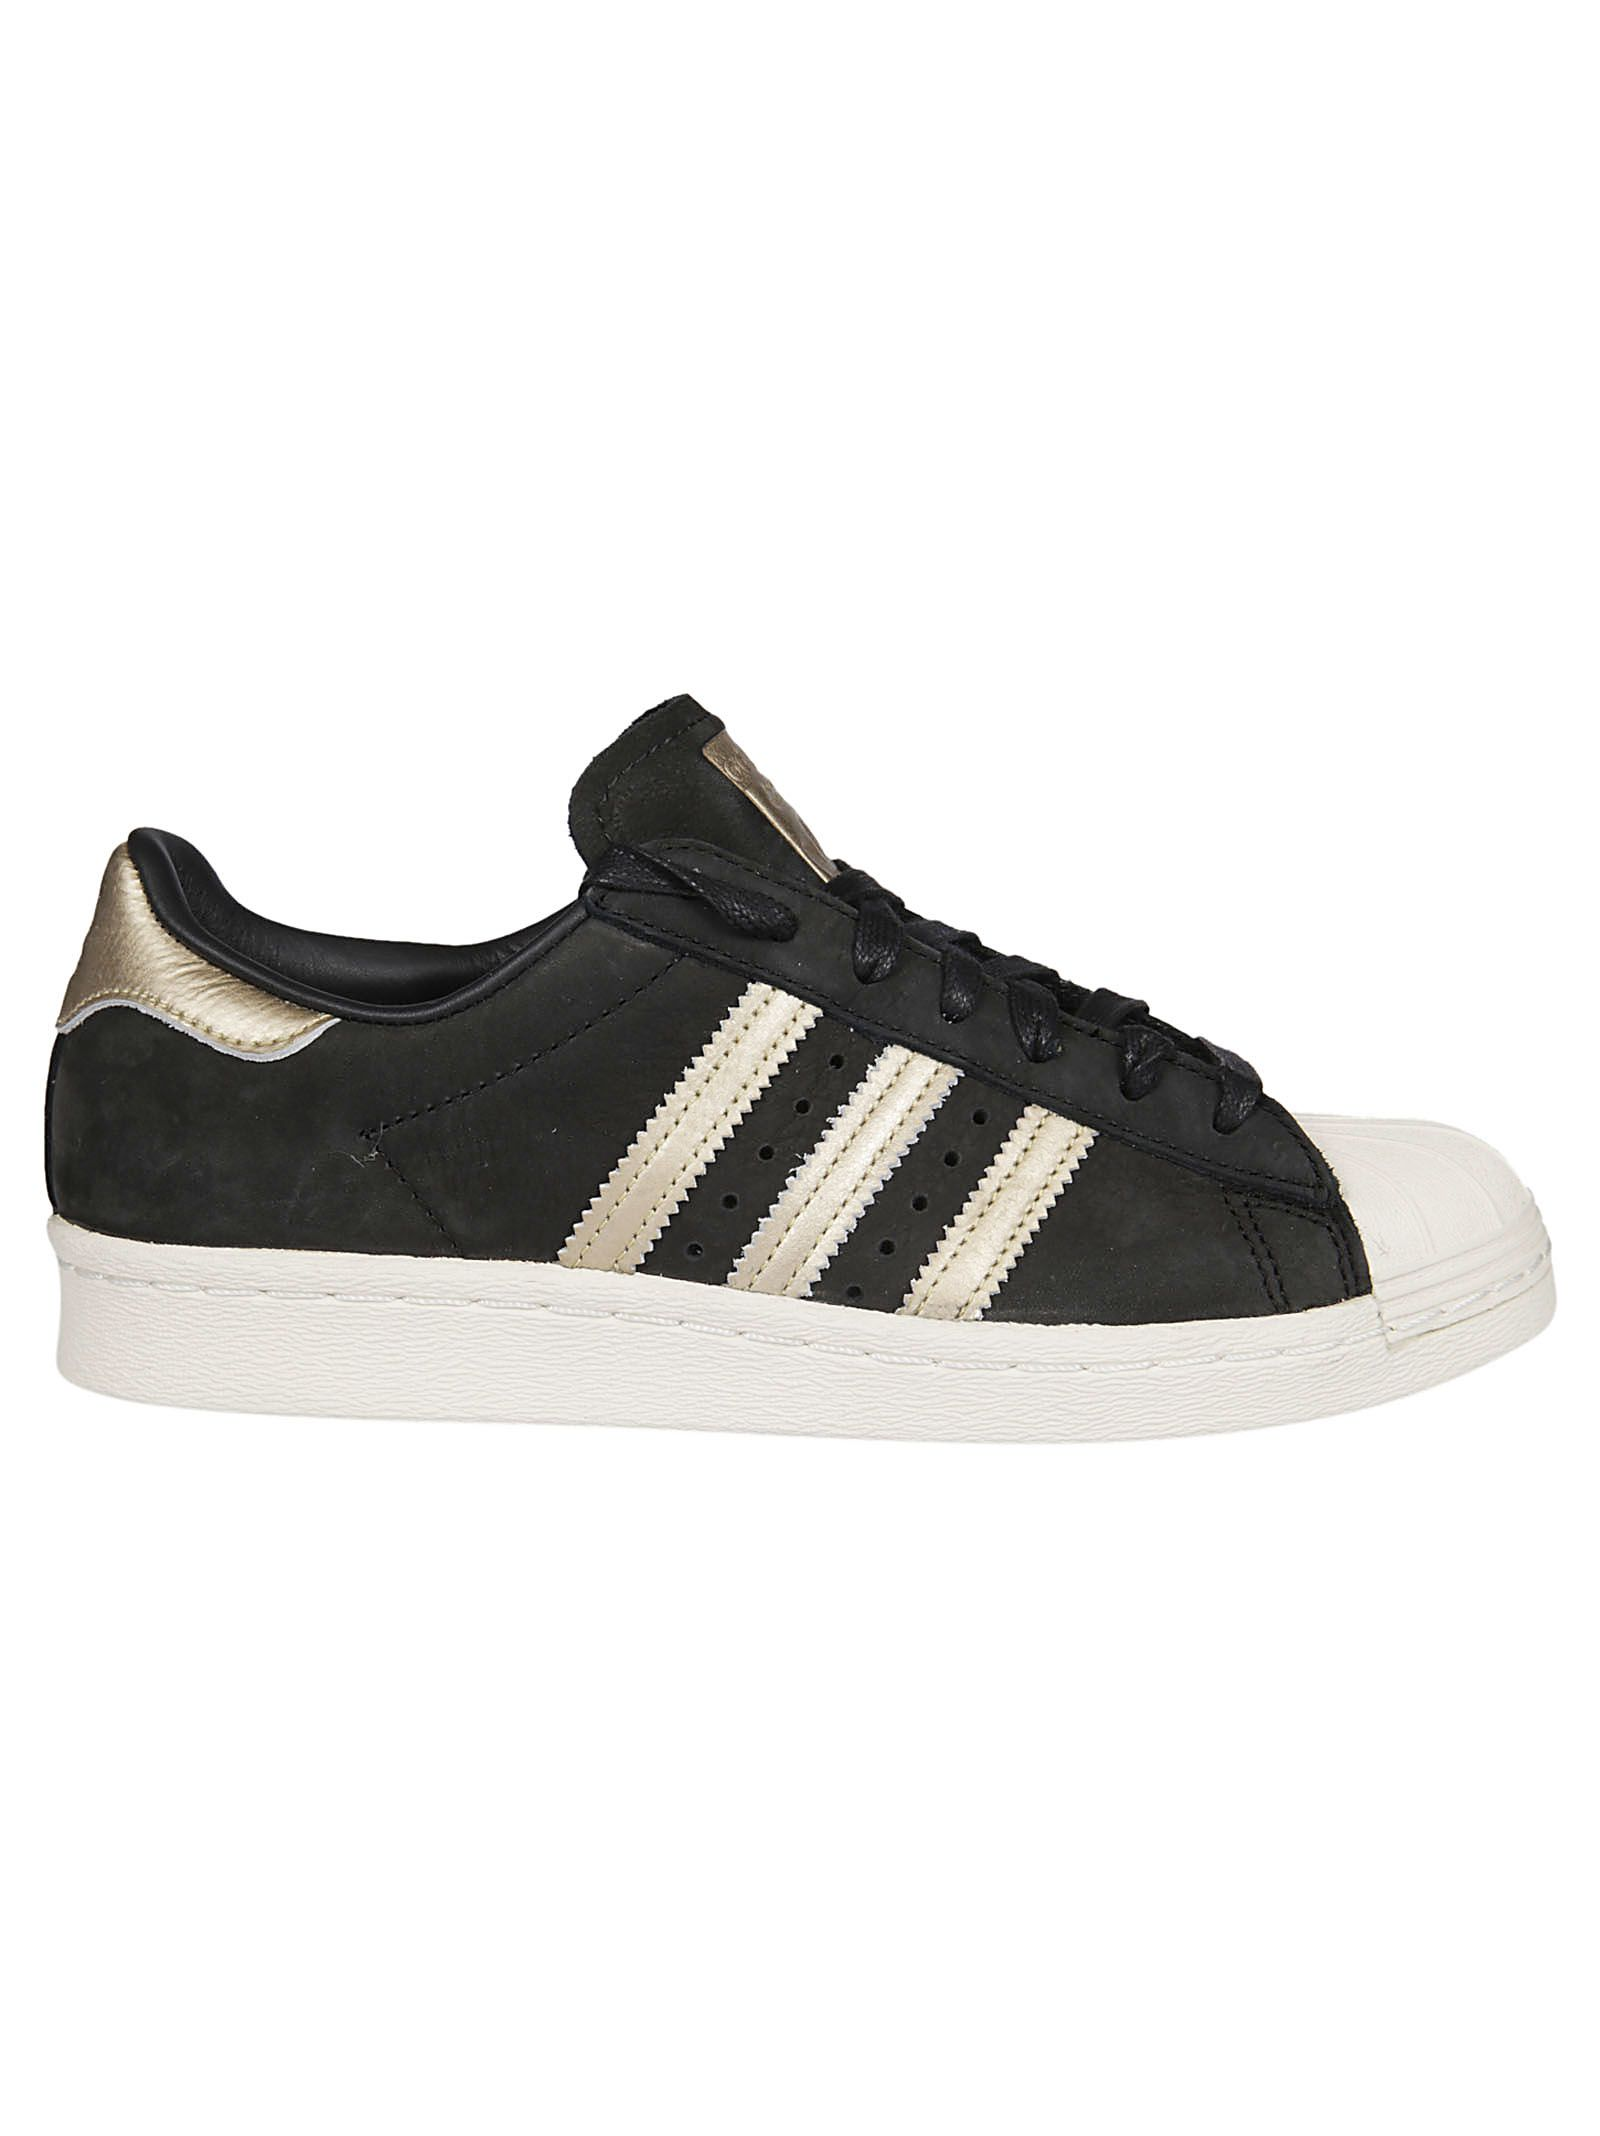 Adidas Originals Superstar 80s Sneakers